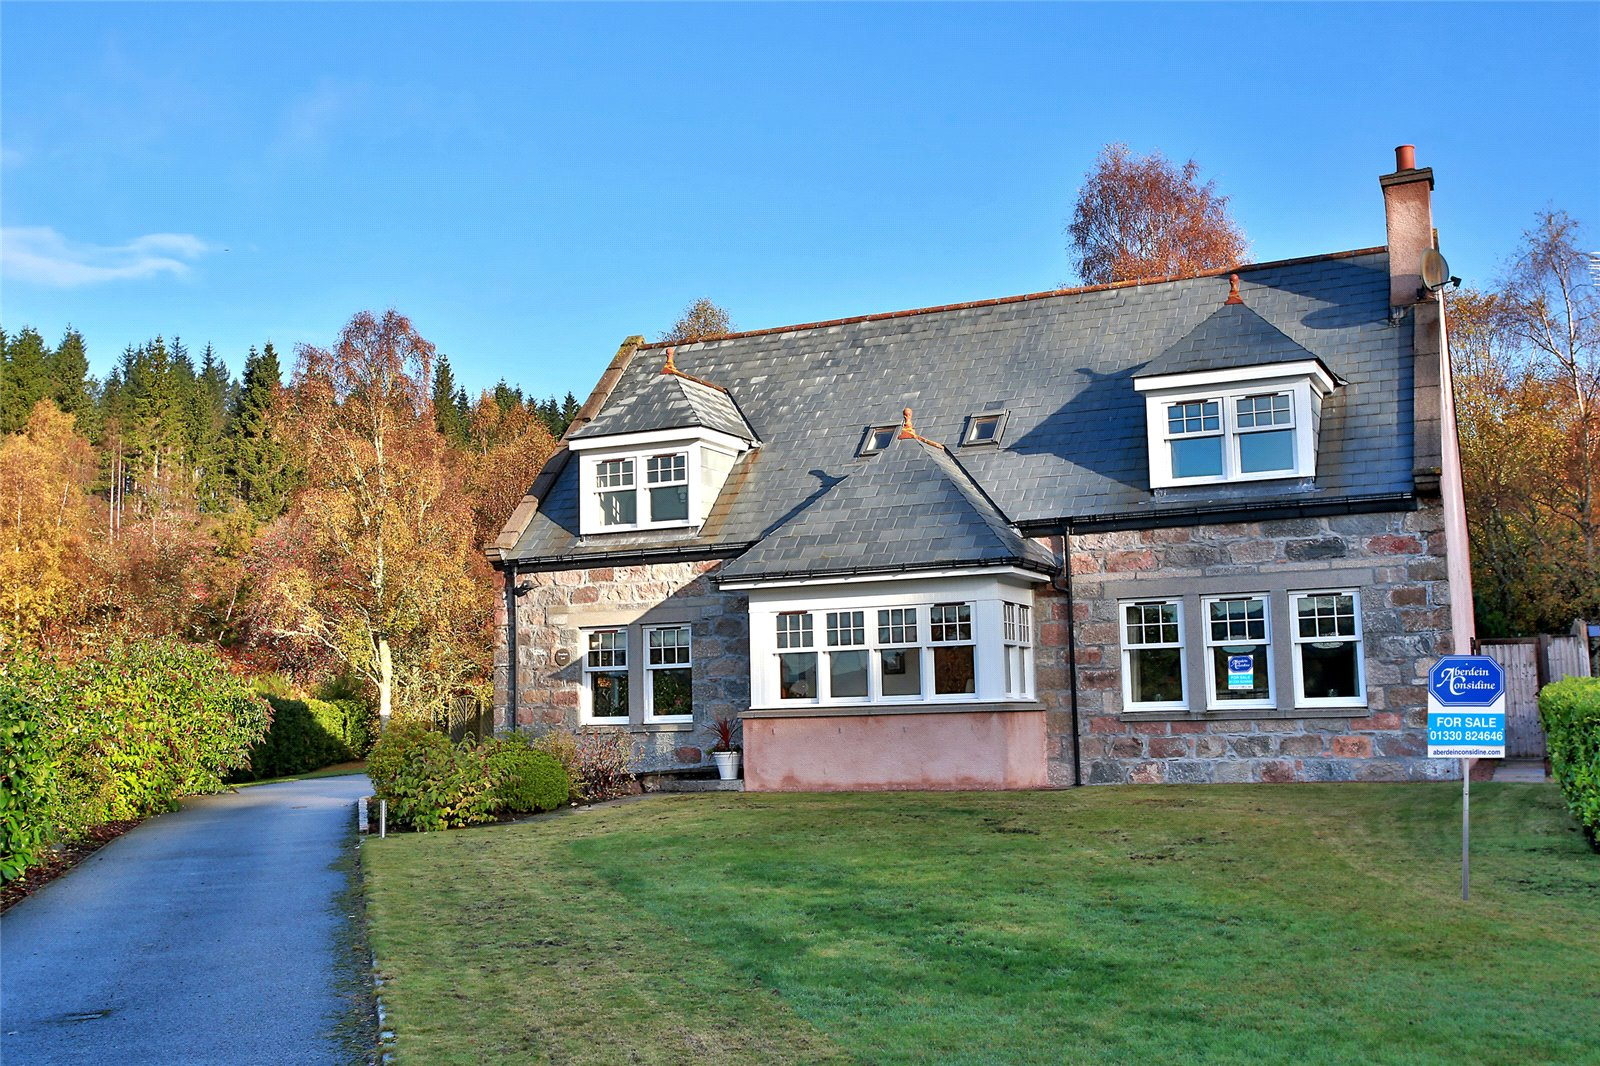 Aberdeenshire Property of the Week: 'Bracken Lea'